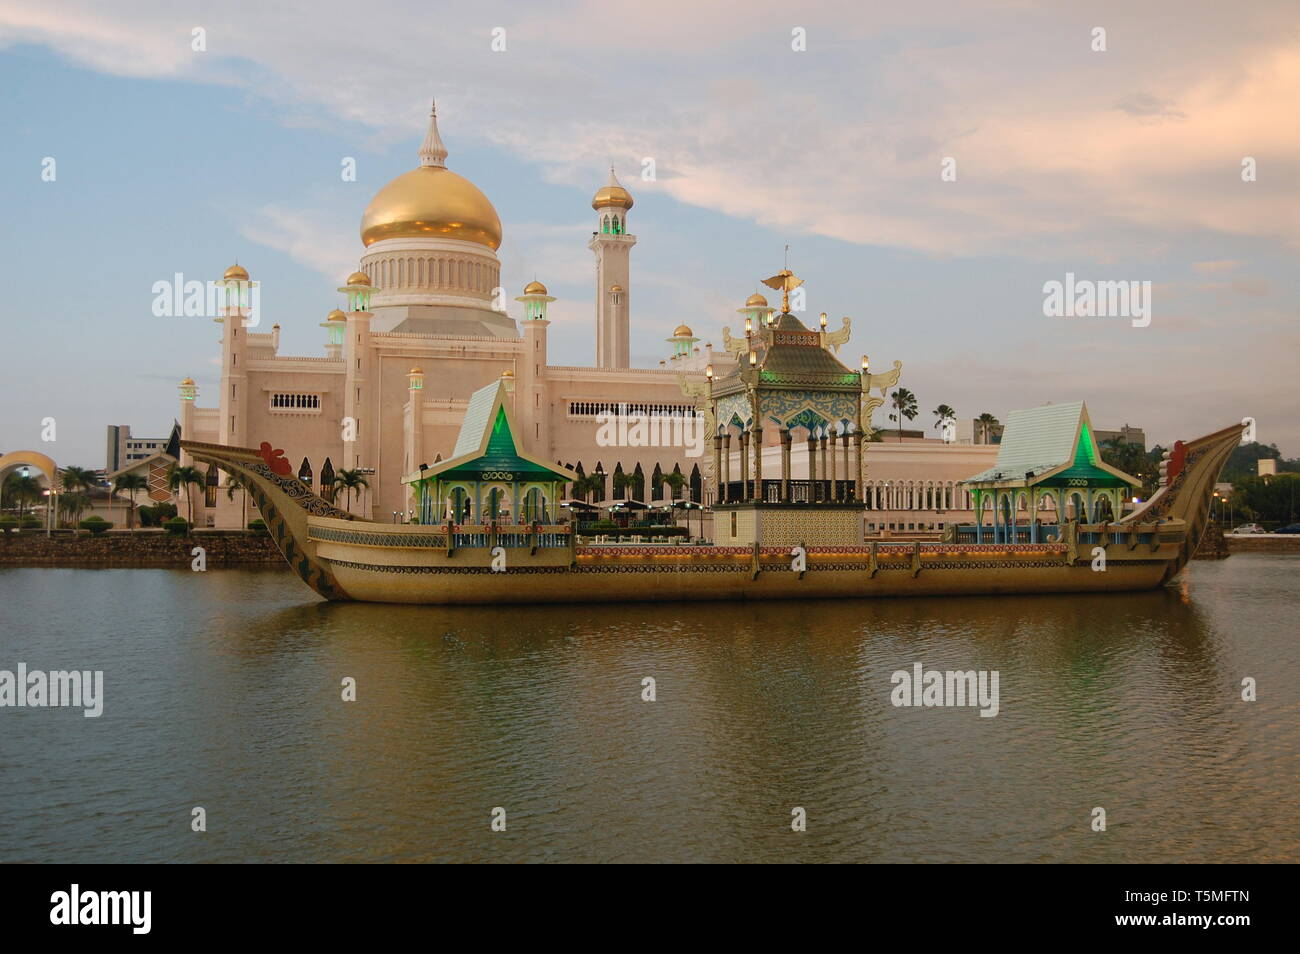 Sultan's Mosque in the daytime looking across the water/lake towards the  expensive mosque in Bandar Seri Begawan, Brunei Darussalem in Borneo - Stock Image